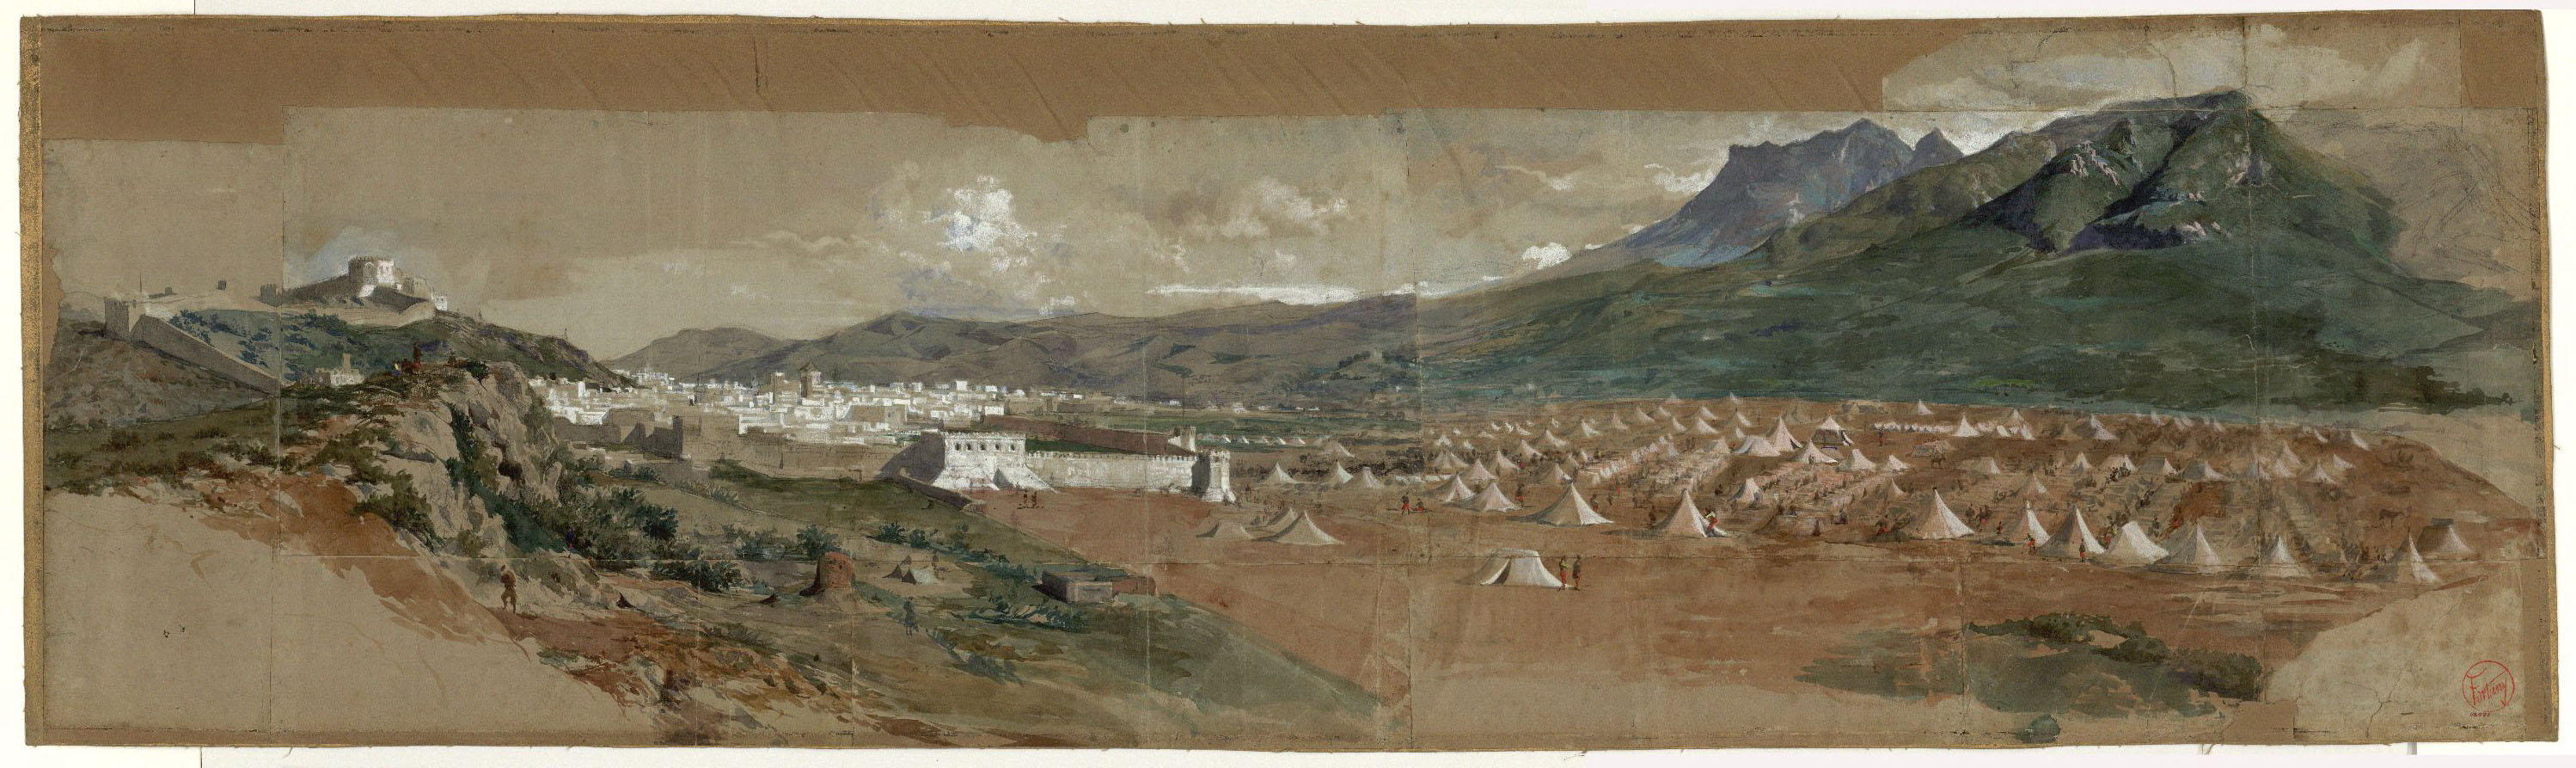 Marià Fortuny - View of Tetouan - 1860